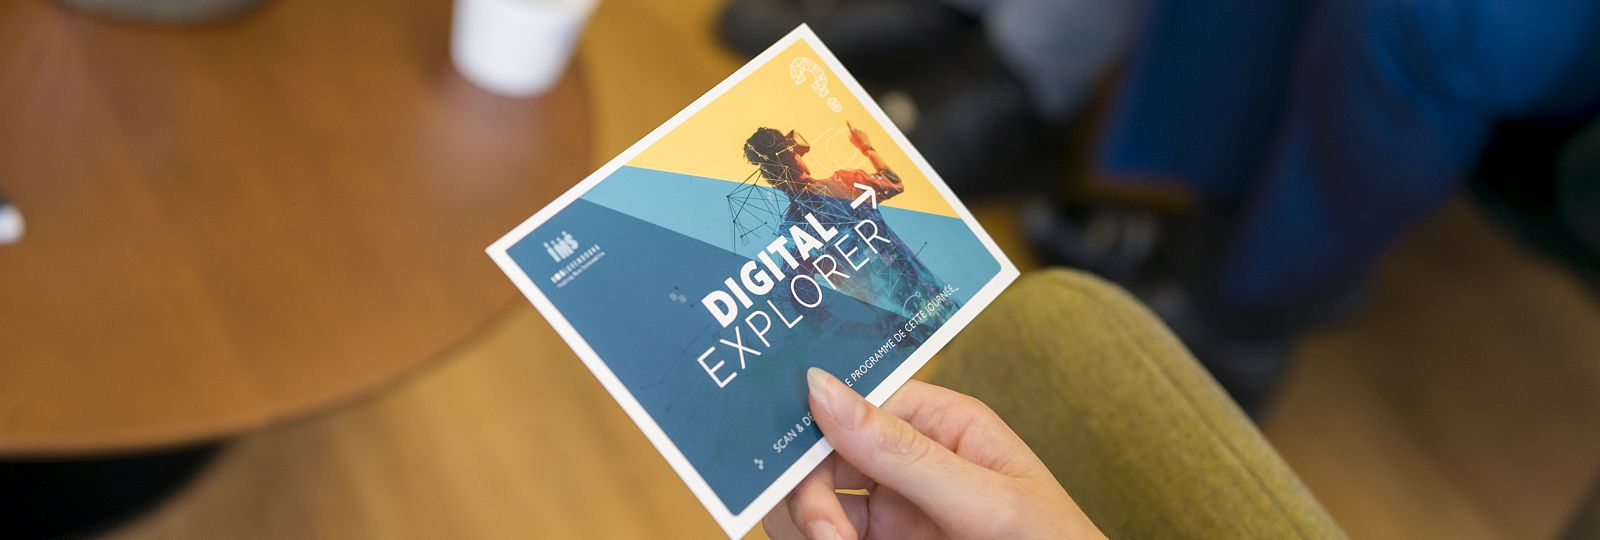 DIGITAL EXPLORER 2020